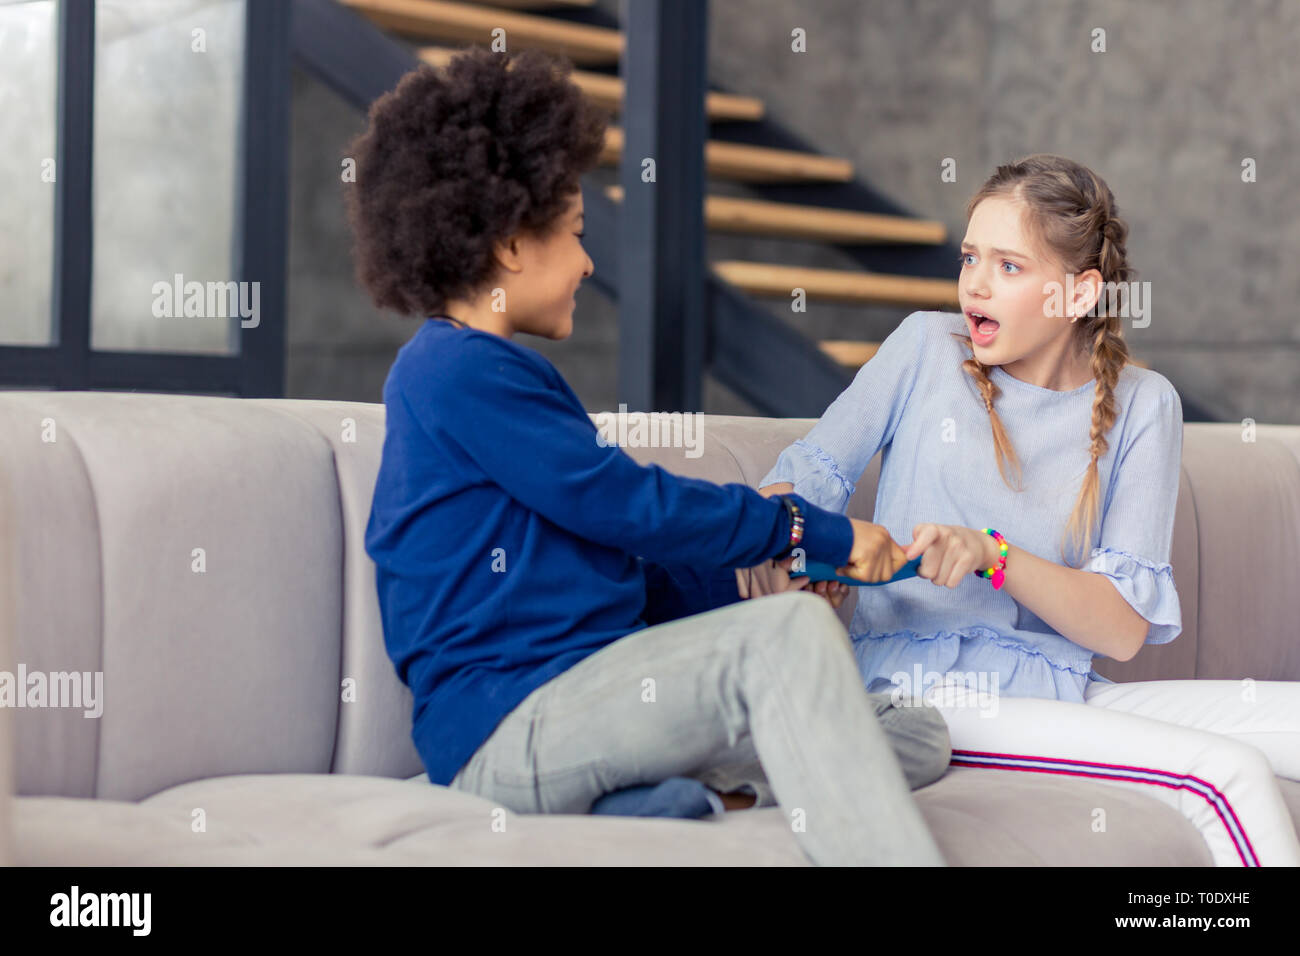 Shocked blonde teenager staring at her friend - Stock Image